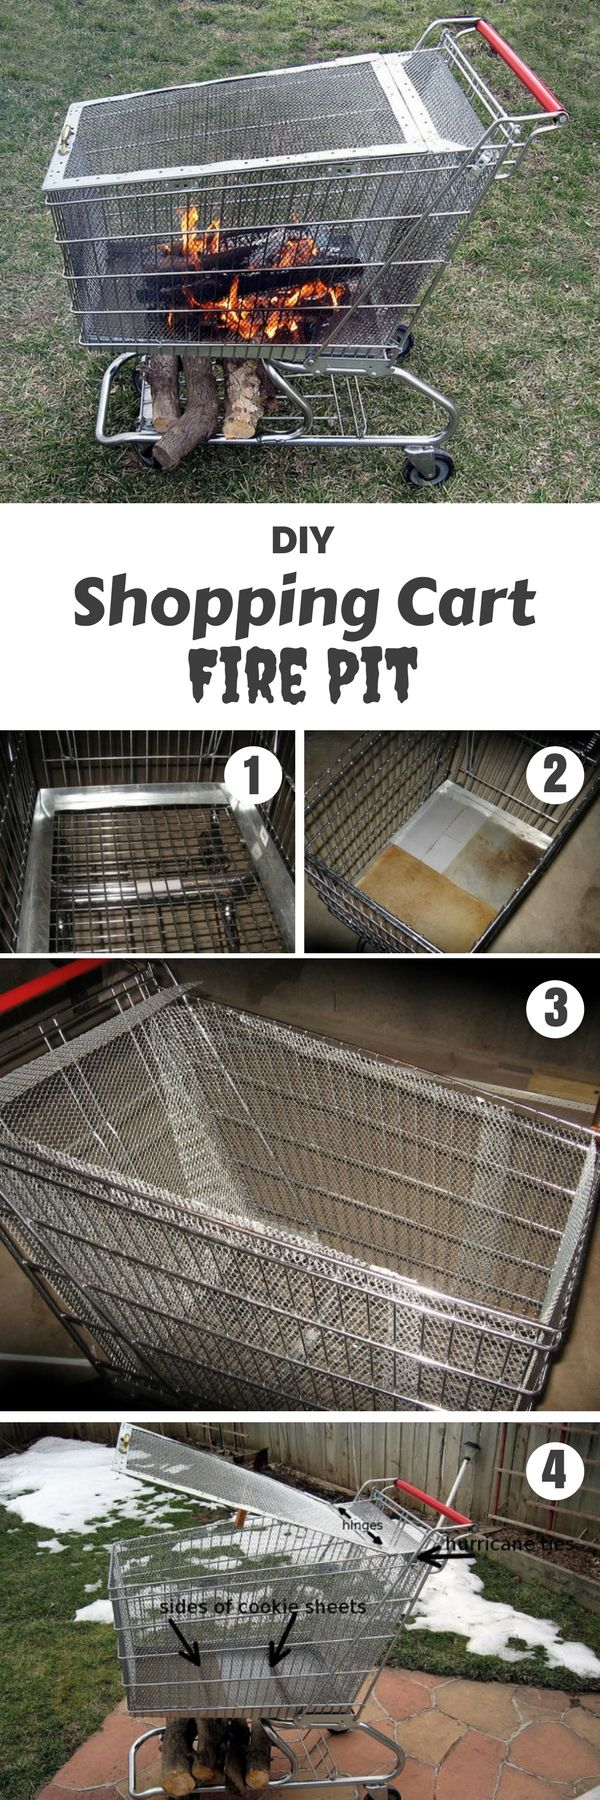 Check out the tutorial on how to make a DIY repurposed shopping cart fire pit @istandarddesign